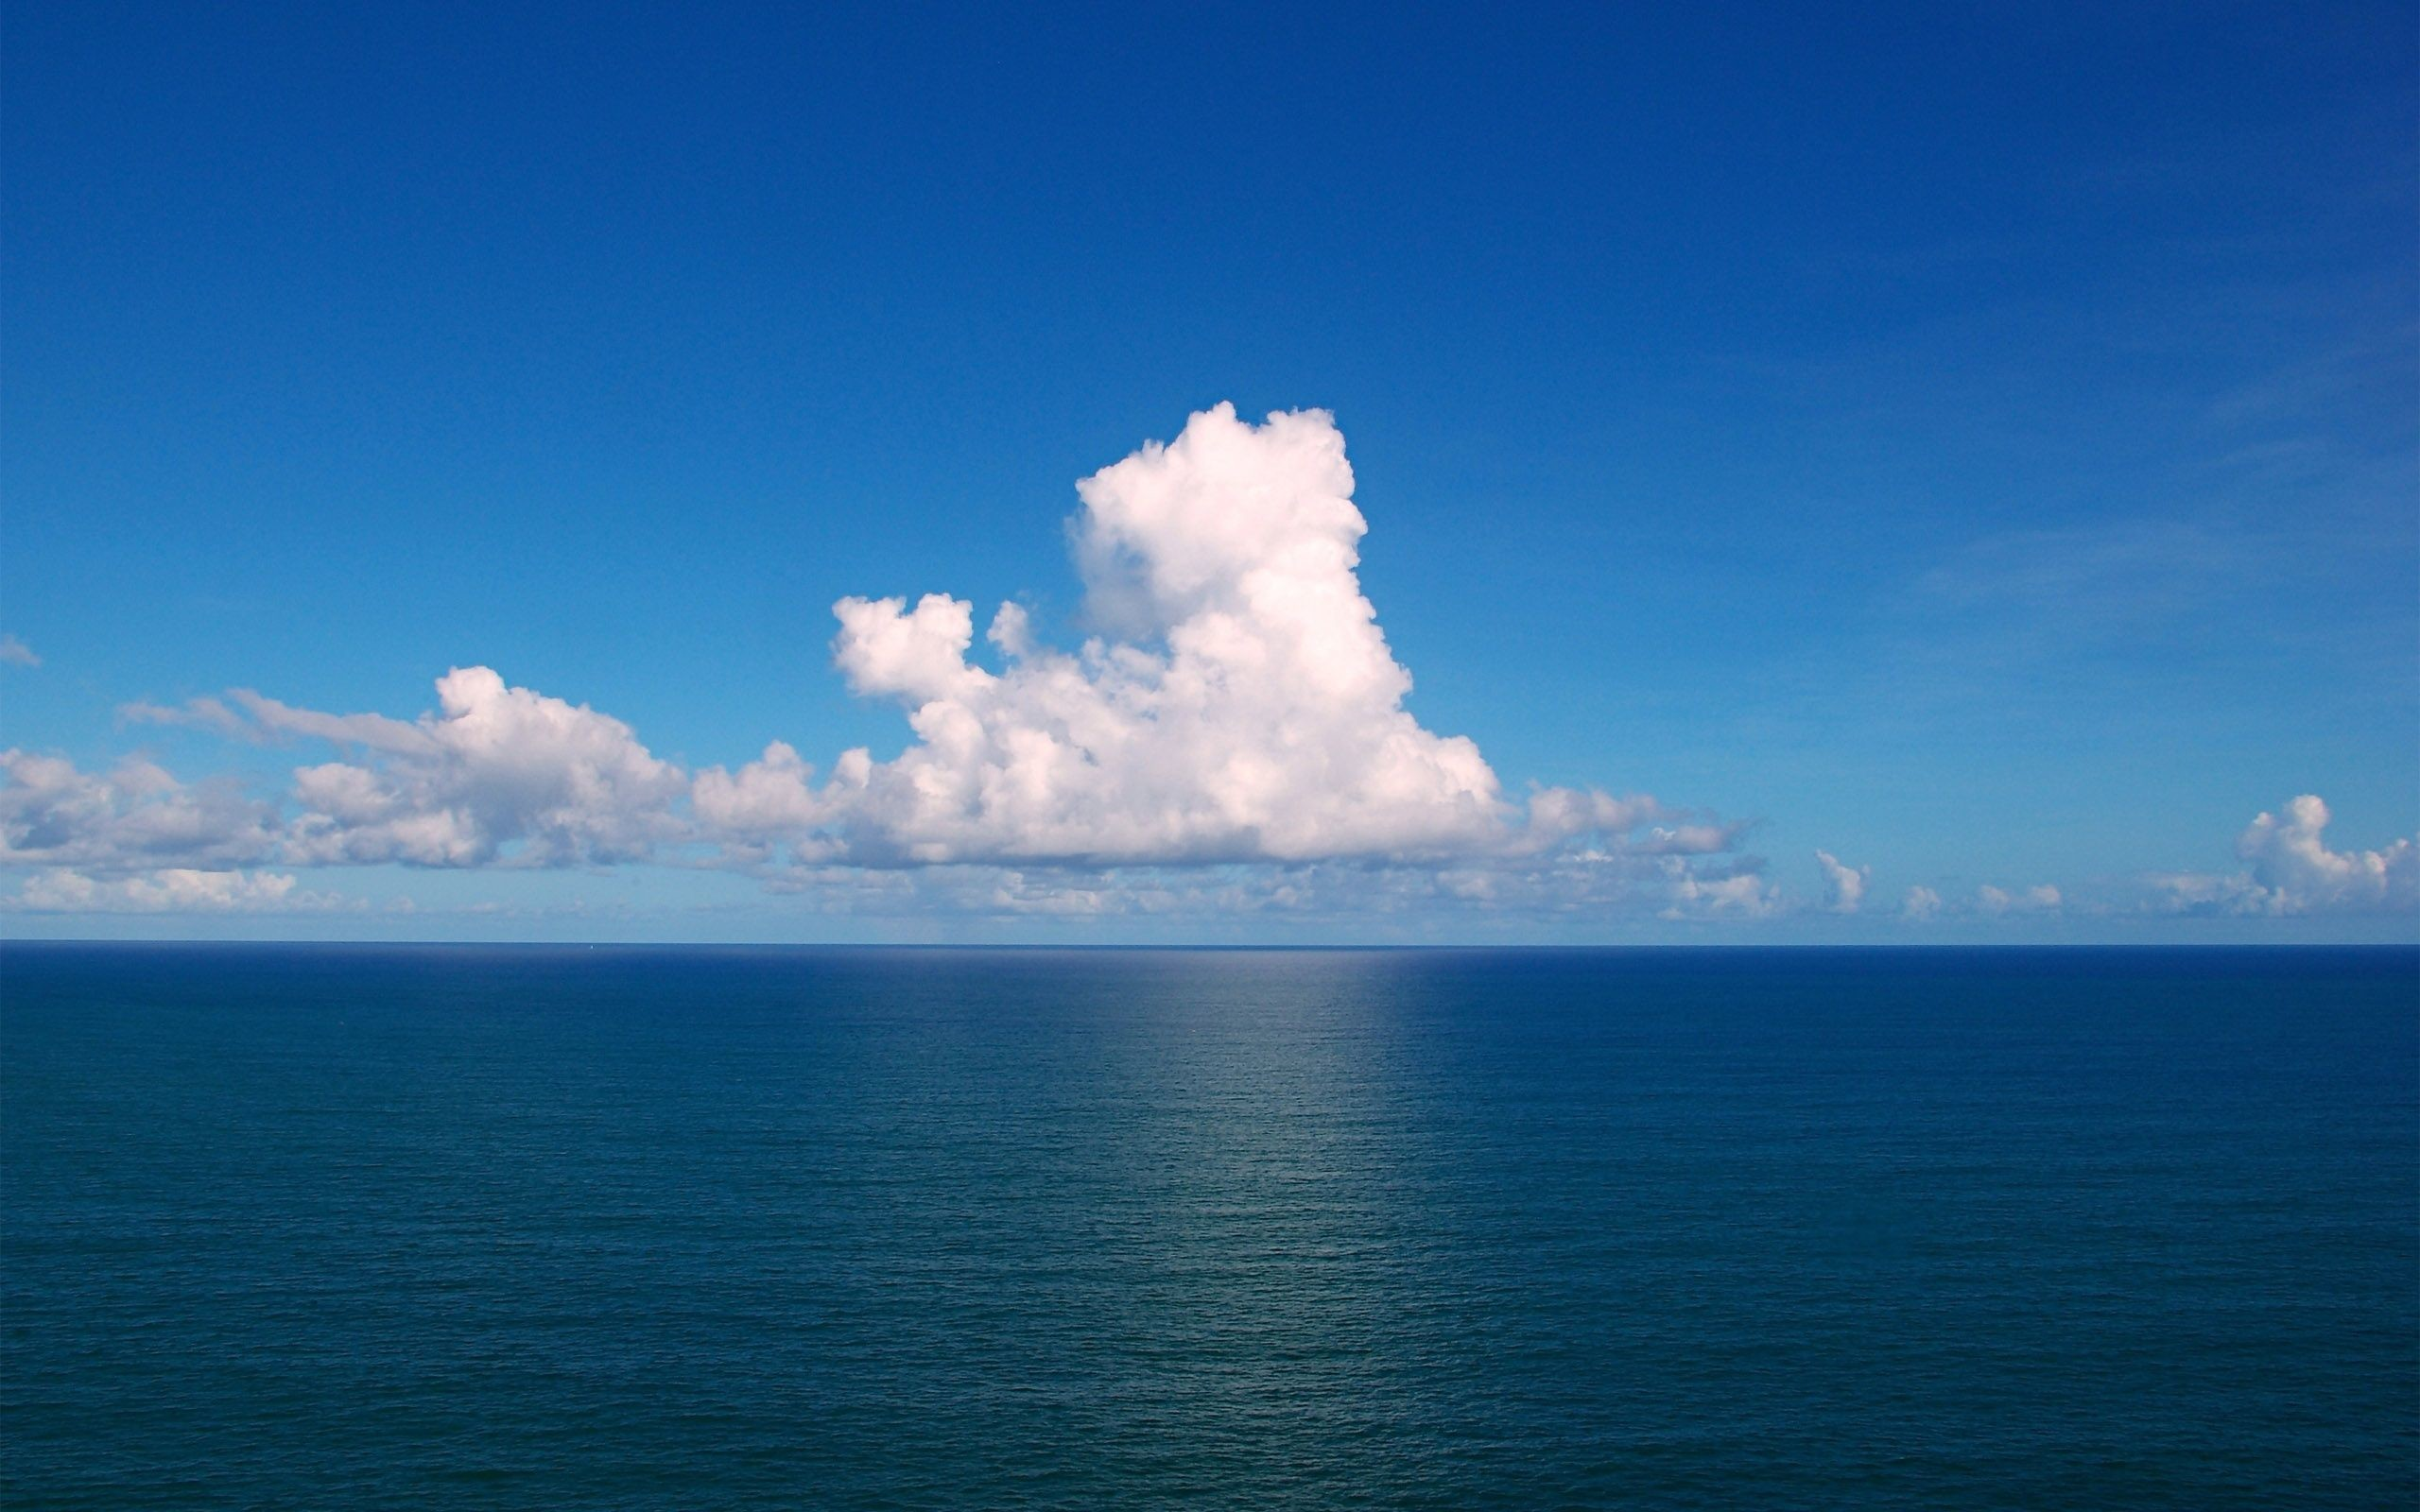 Atlantic Ocean Scene photos of Ocean Beauty That You Can See All ..